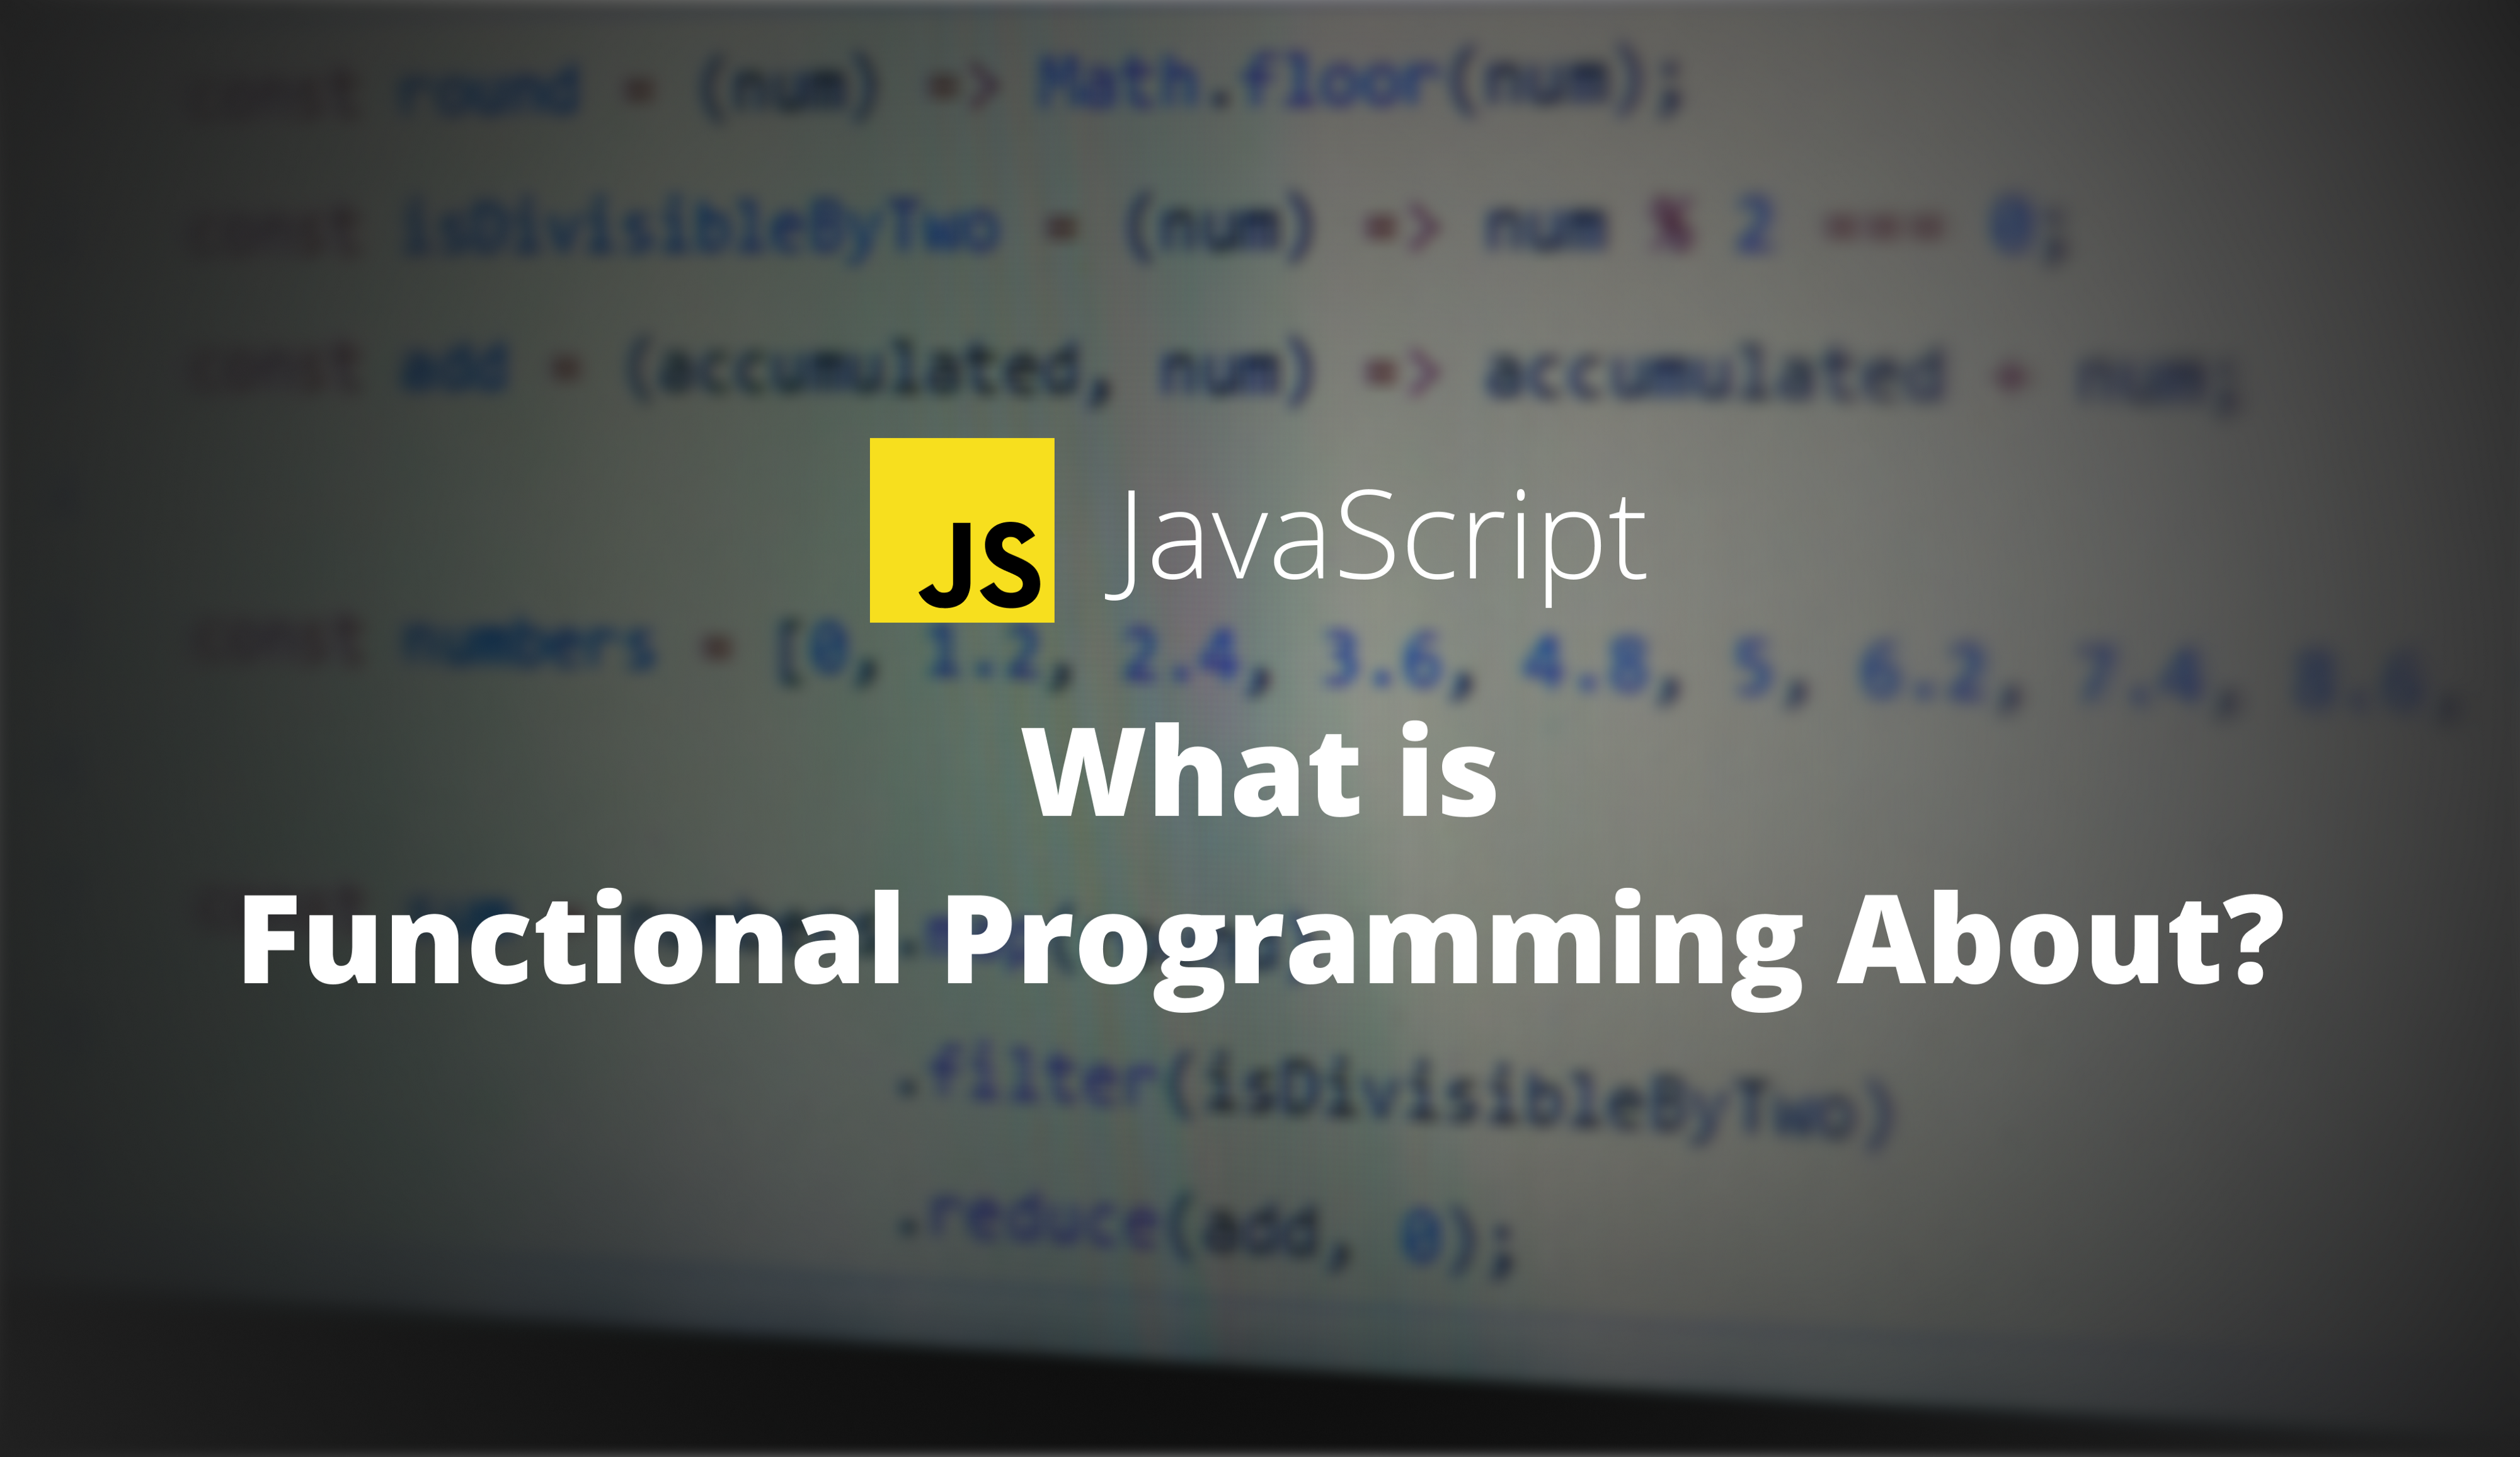 What is functional programming about?